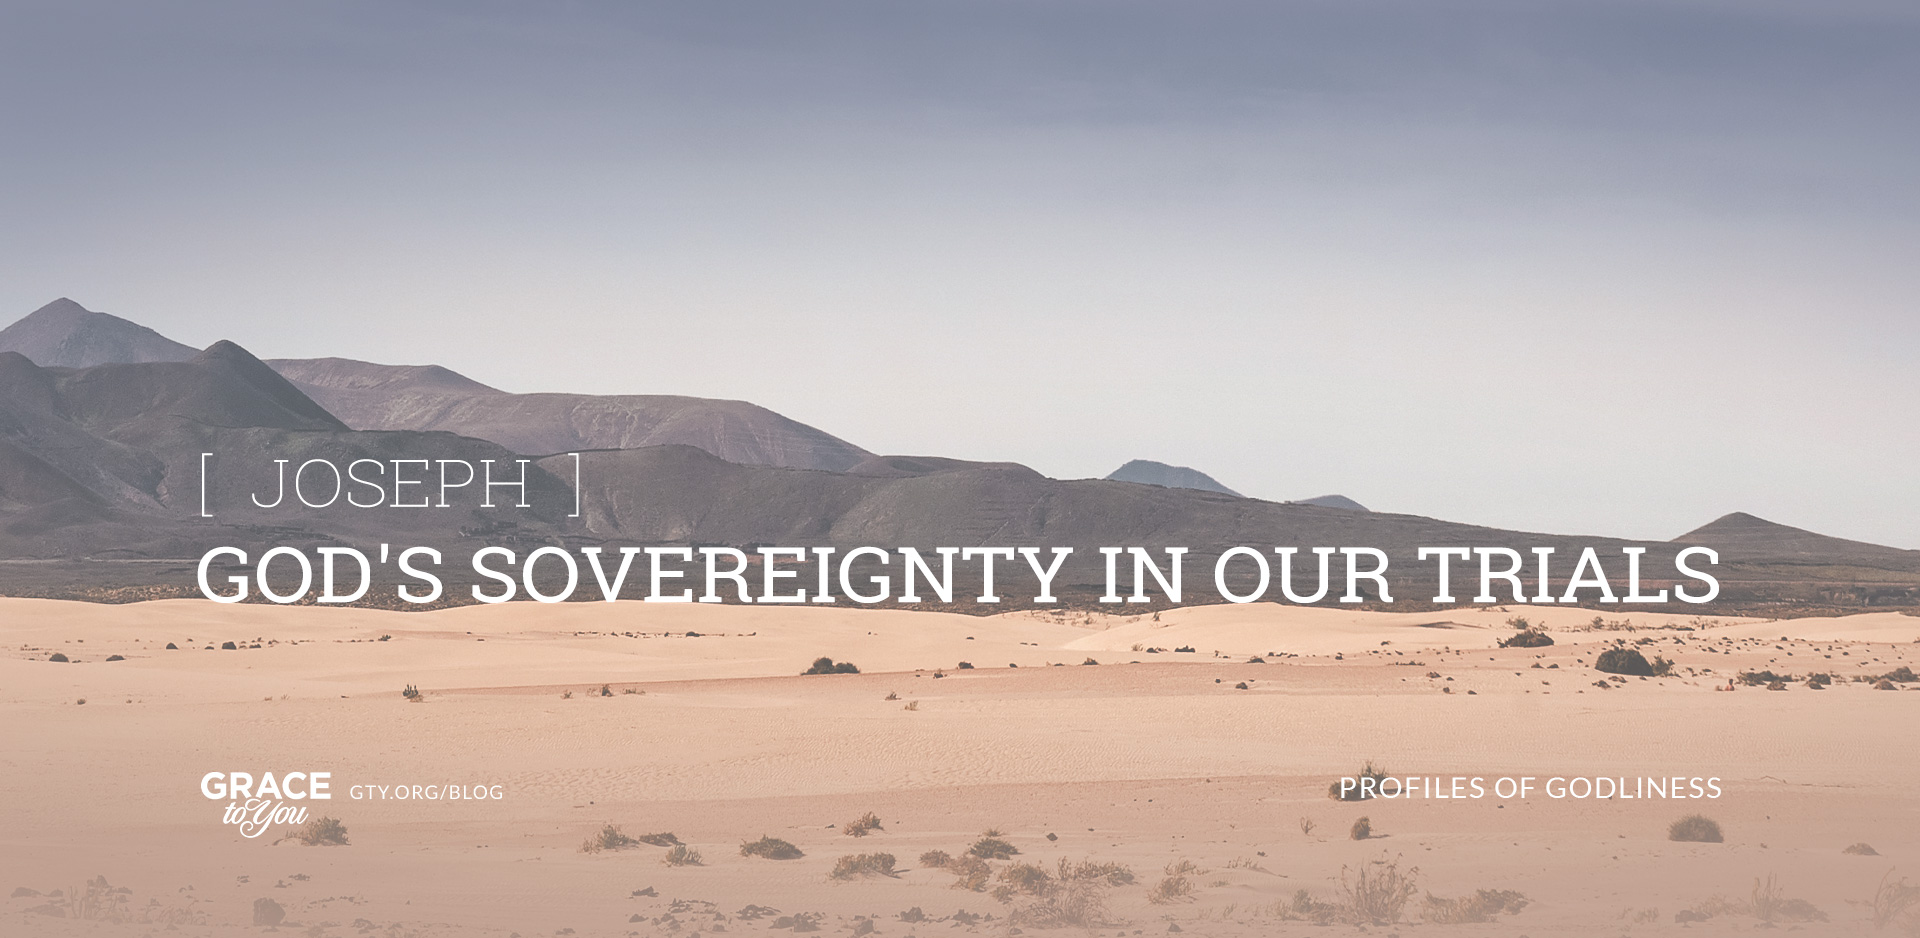 Joseph: God's Sovereignty in Our Trials